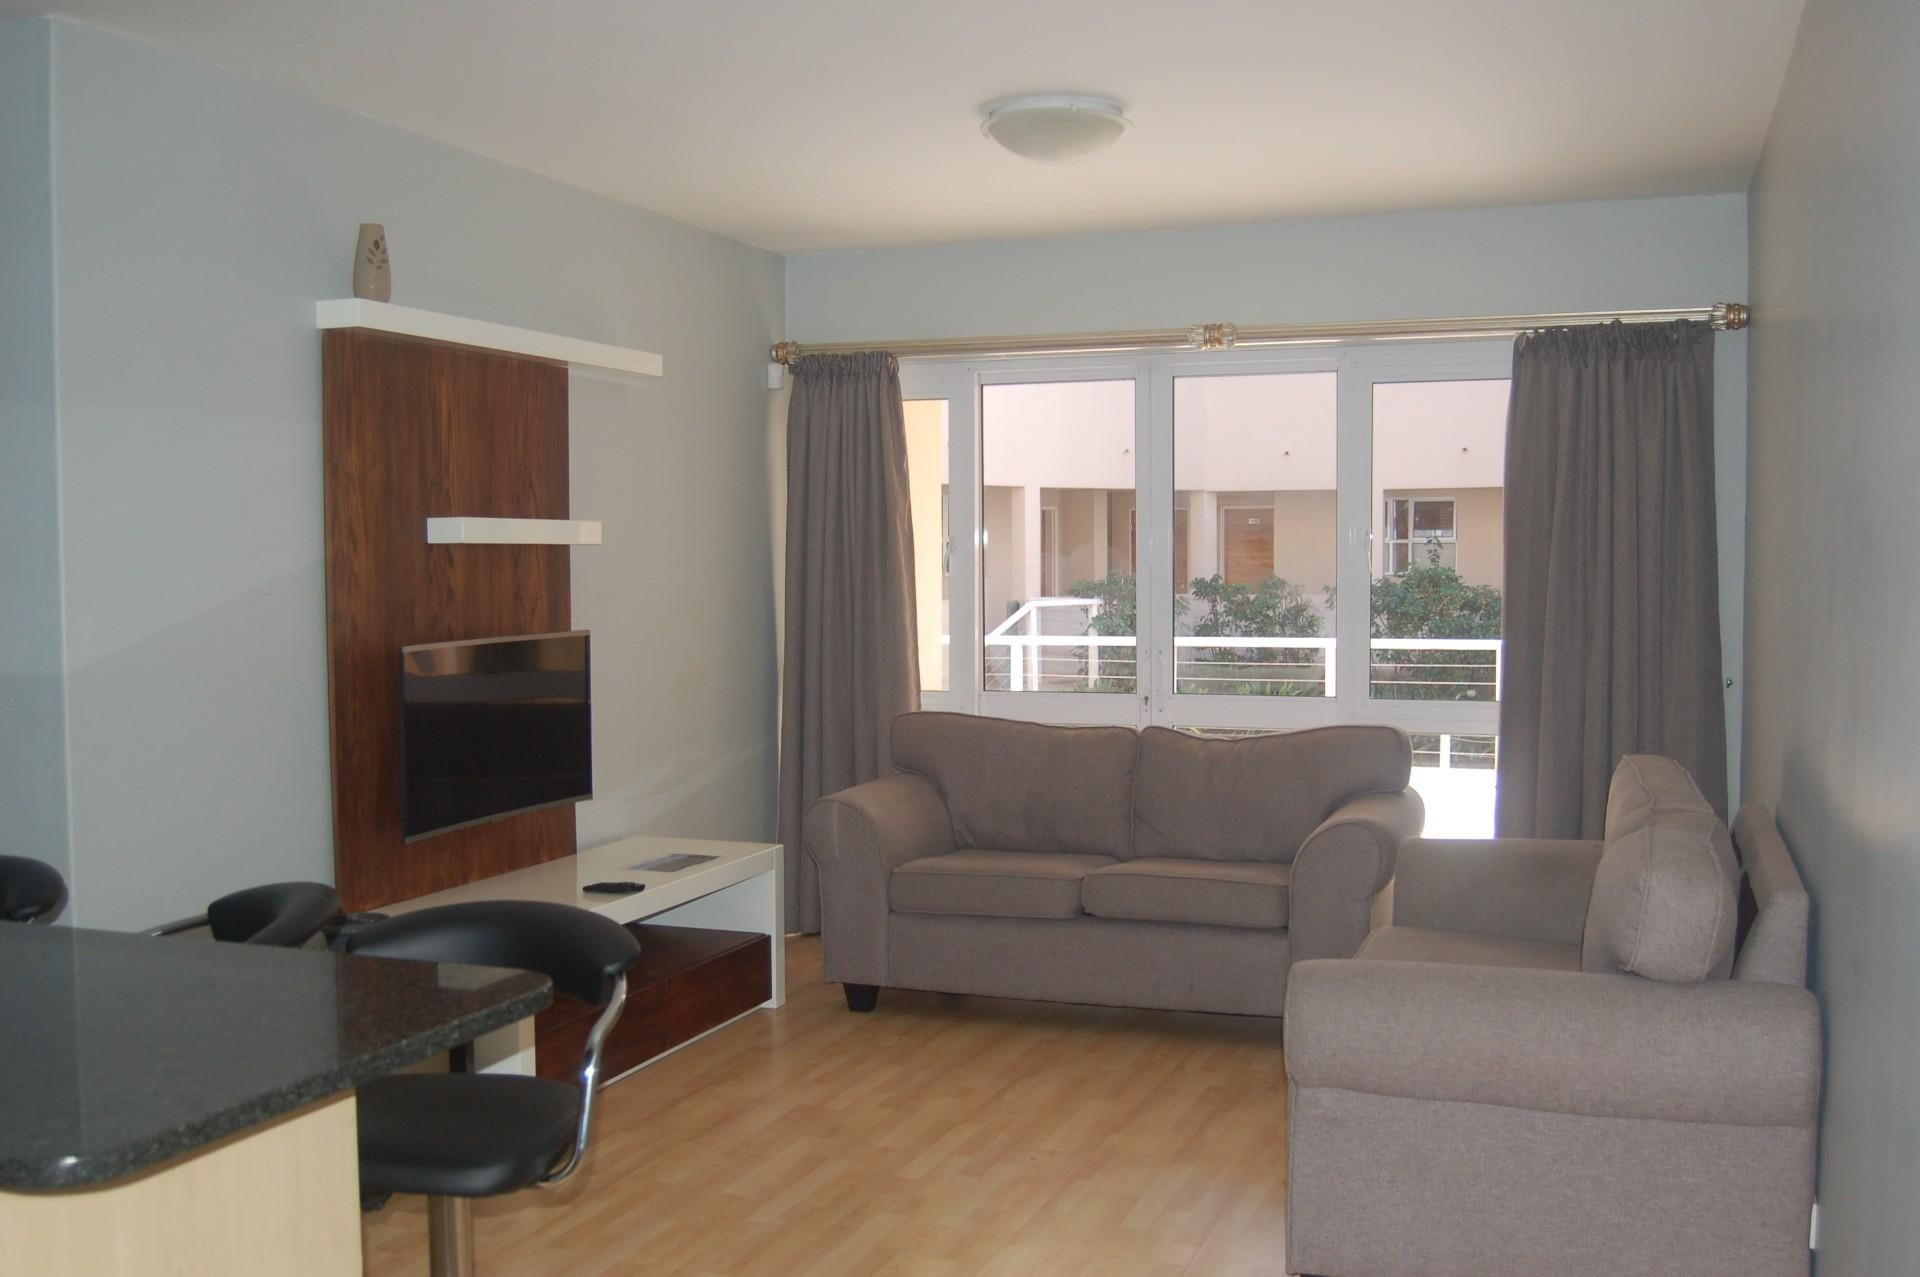 3 Bedroom Apartment For Sale in Beacon Bay North